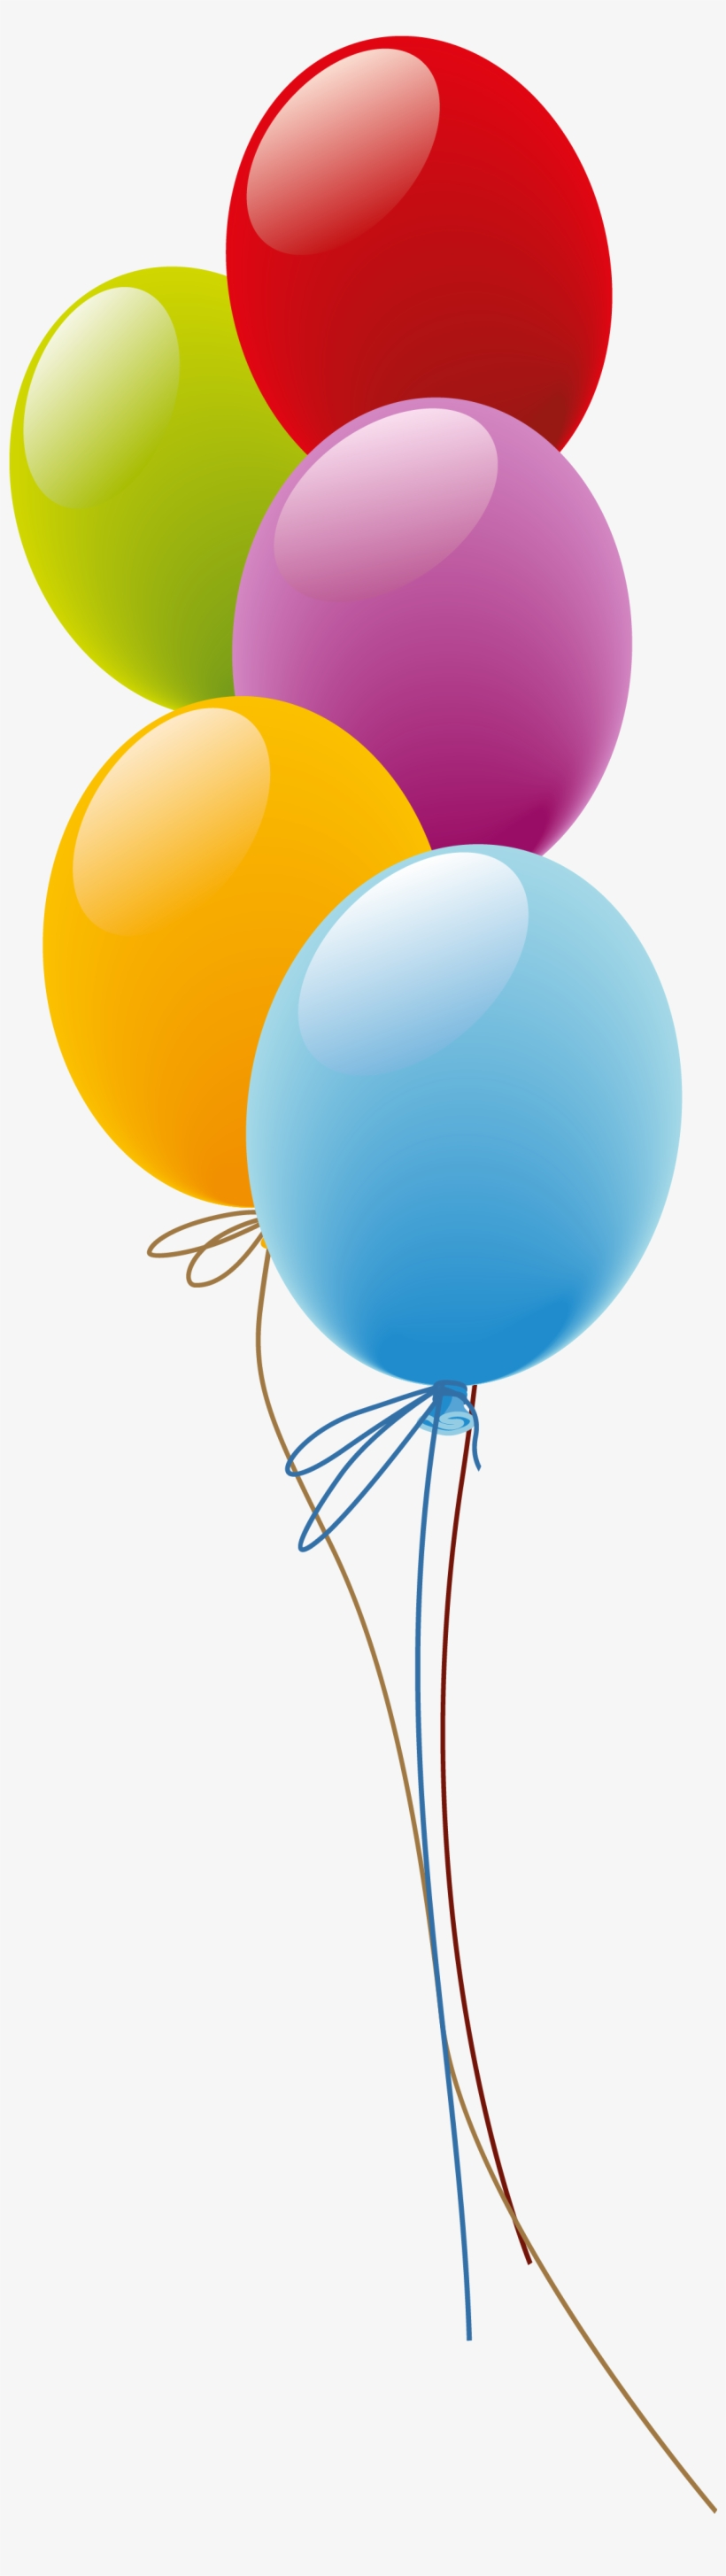 Balloons Png Picture Artistic Elements Pinterest - Transparent Birthday Party Balloon Png, transparent png #39799